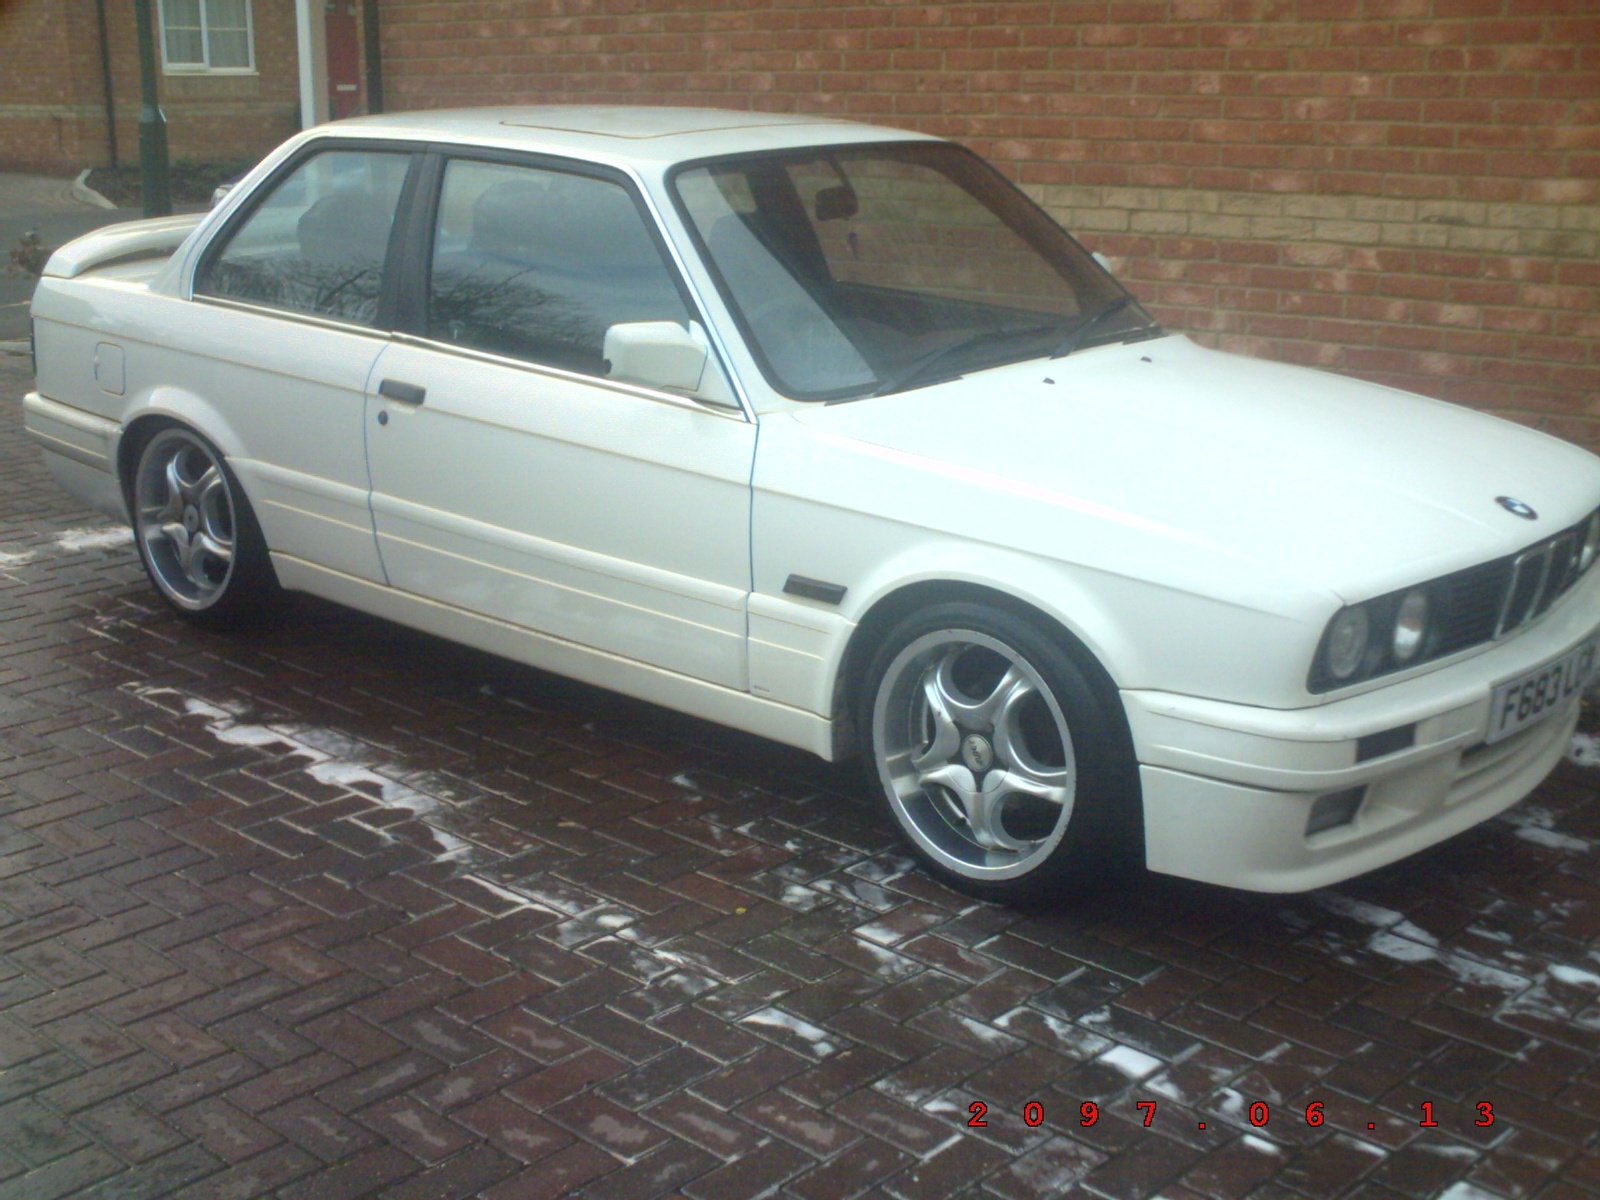 BMW 3 series 316 1988 photo - 1